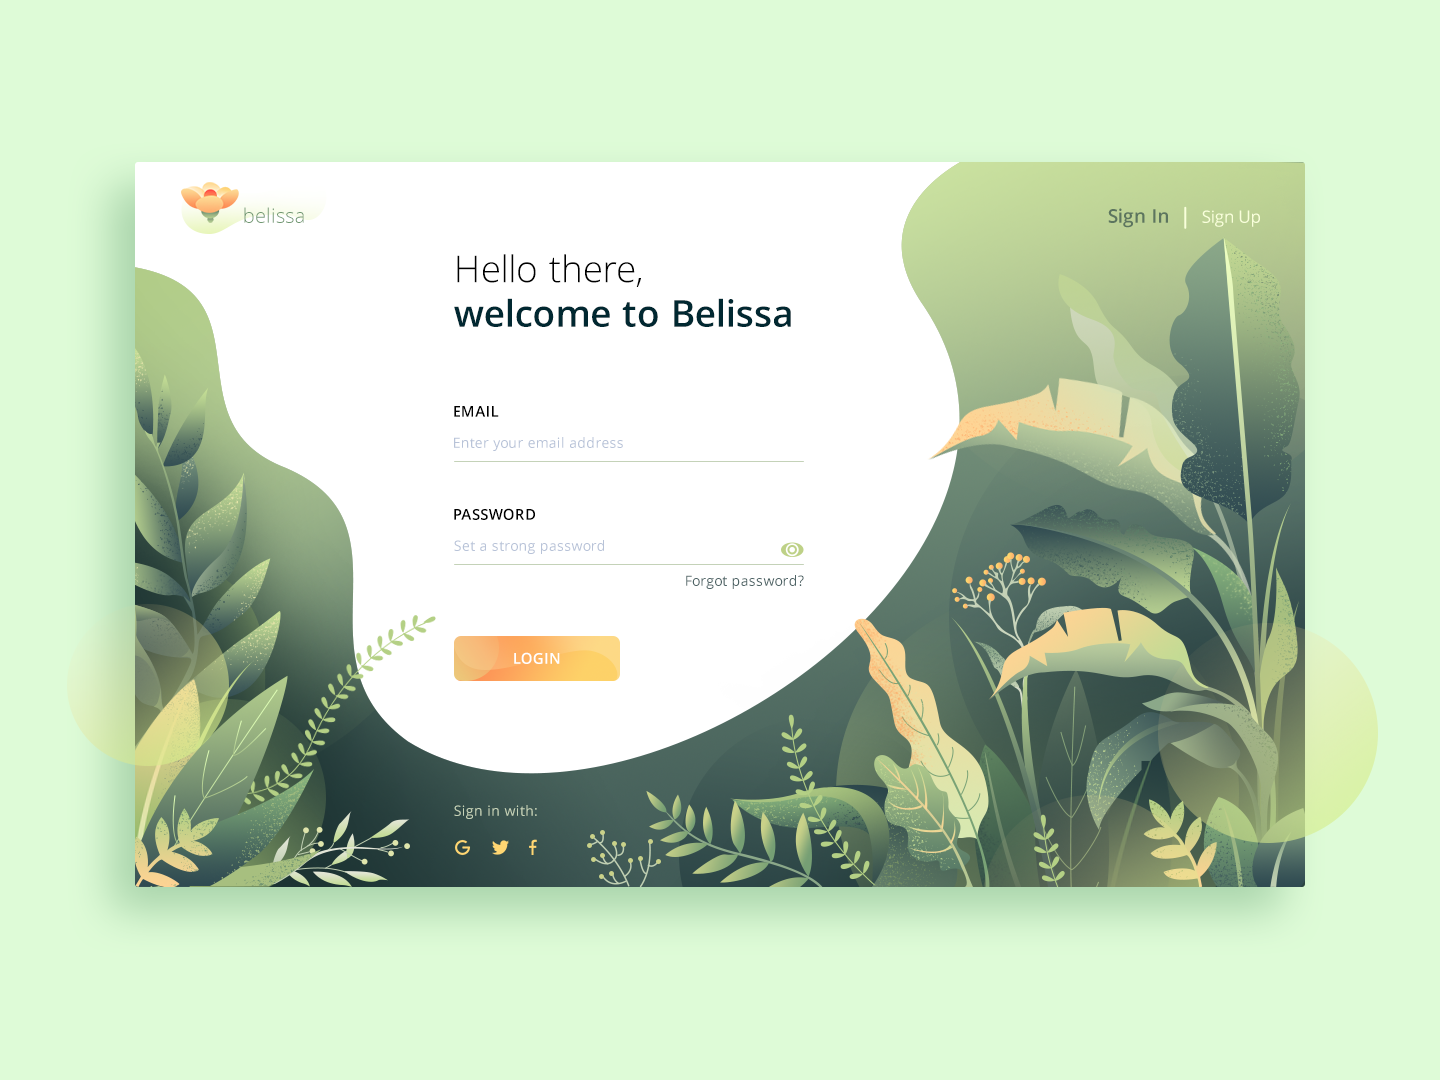 Login page green gradient webdesign flower web typography vector illustration sign in sign up login design login page ui design ui ux design